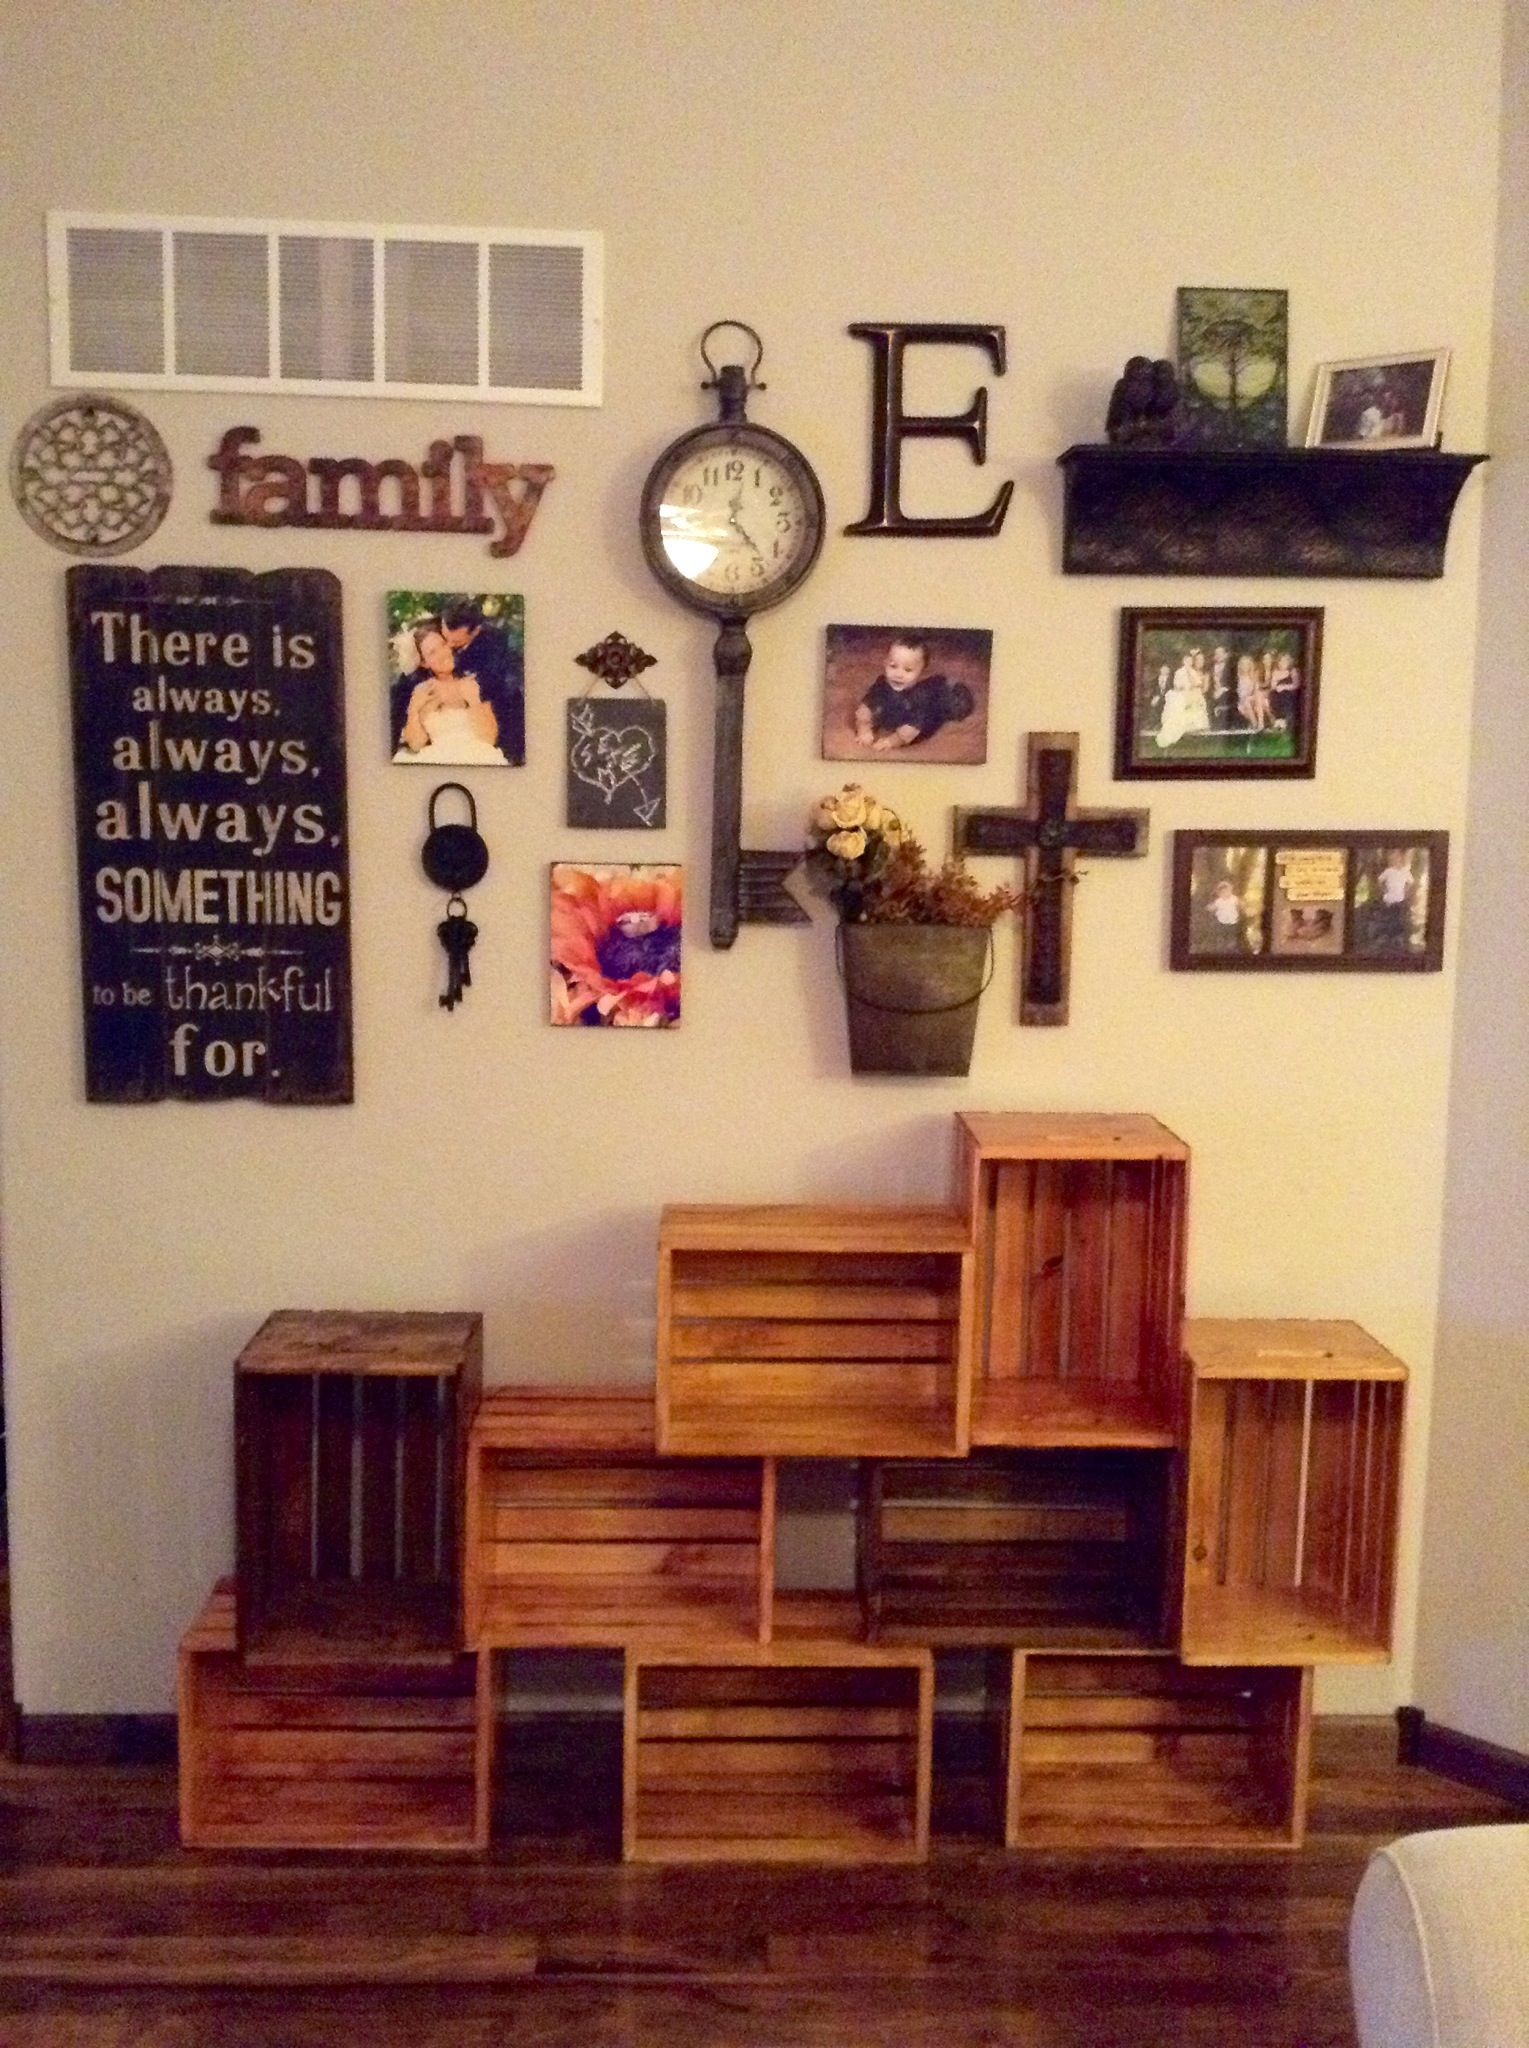 Love The Sign There Is Always Something To Be Thankful For Pinterest Home Decor Ideas Diy Living Room Decor Wall Decor Living Room